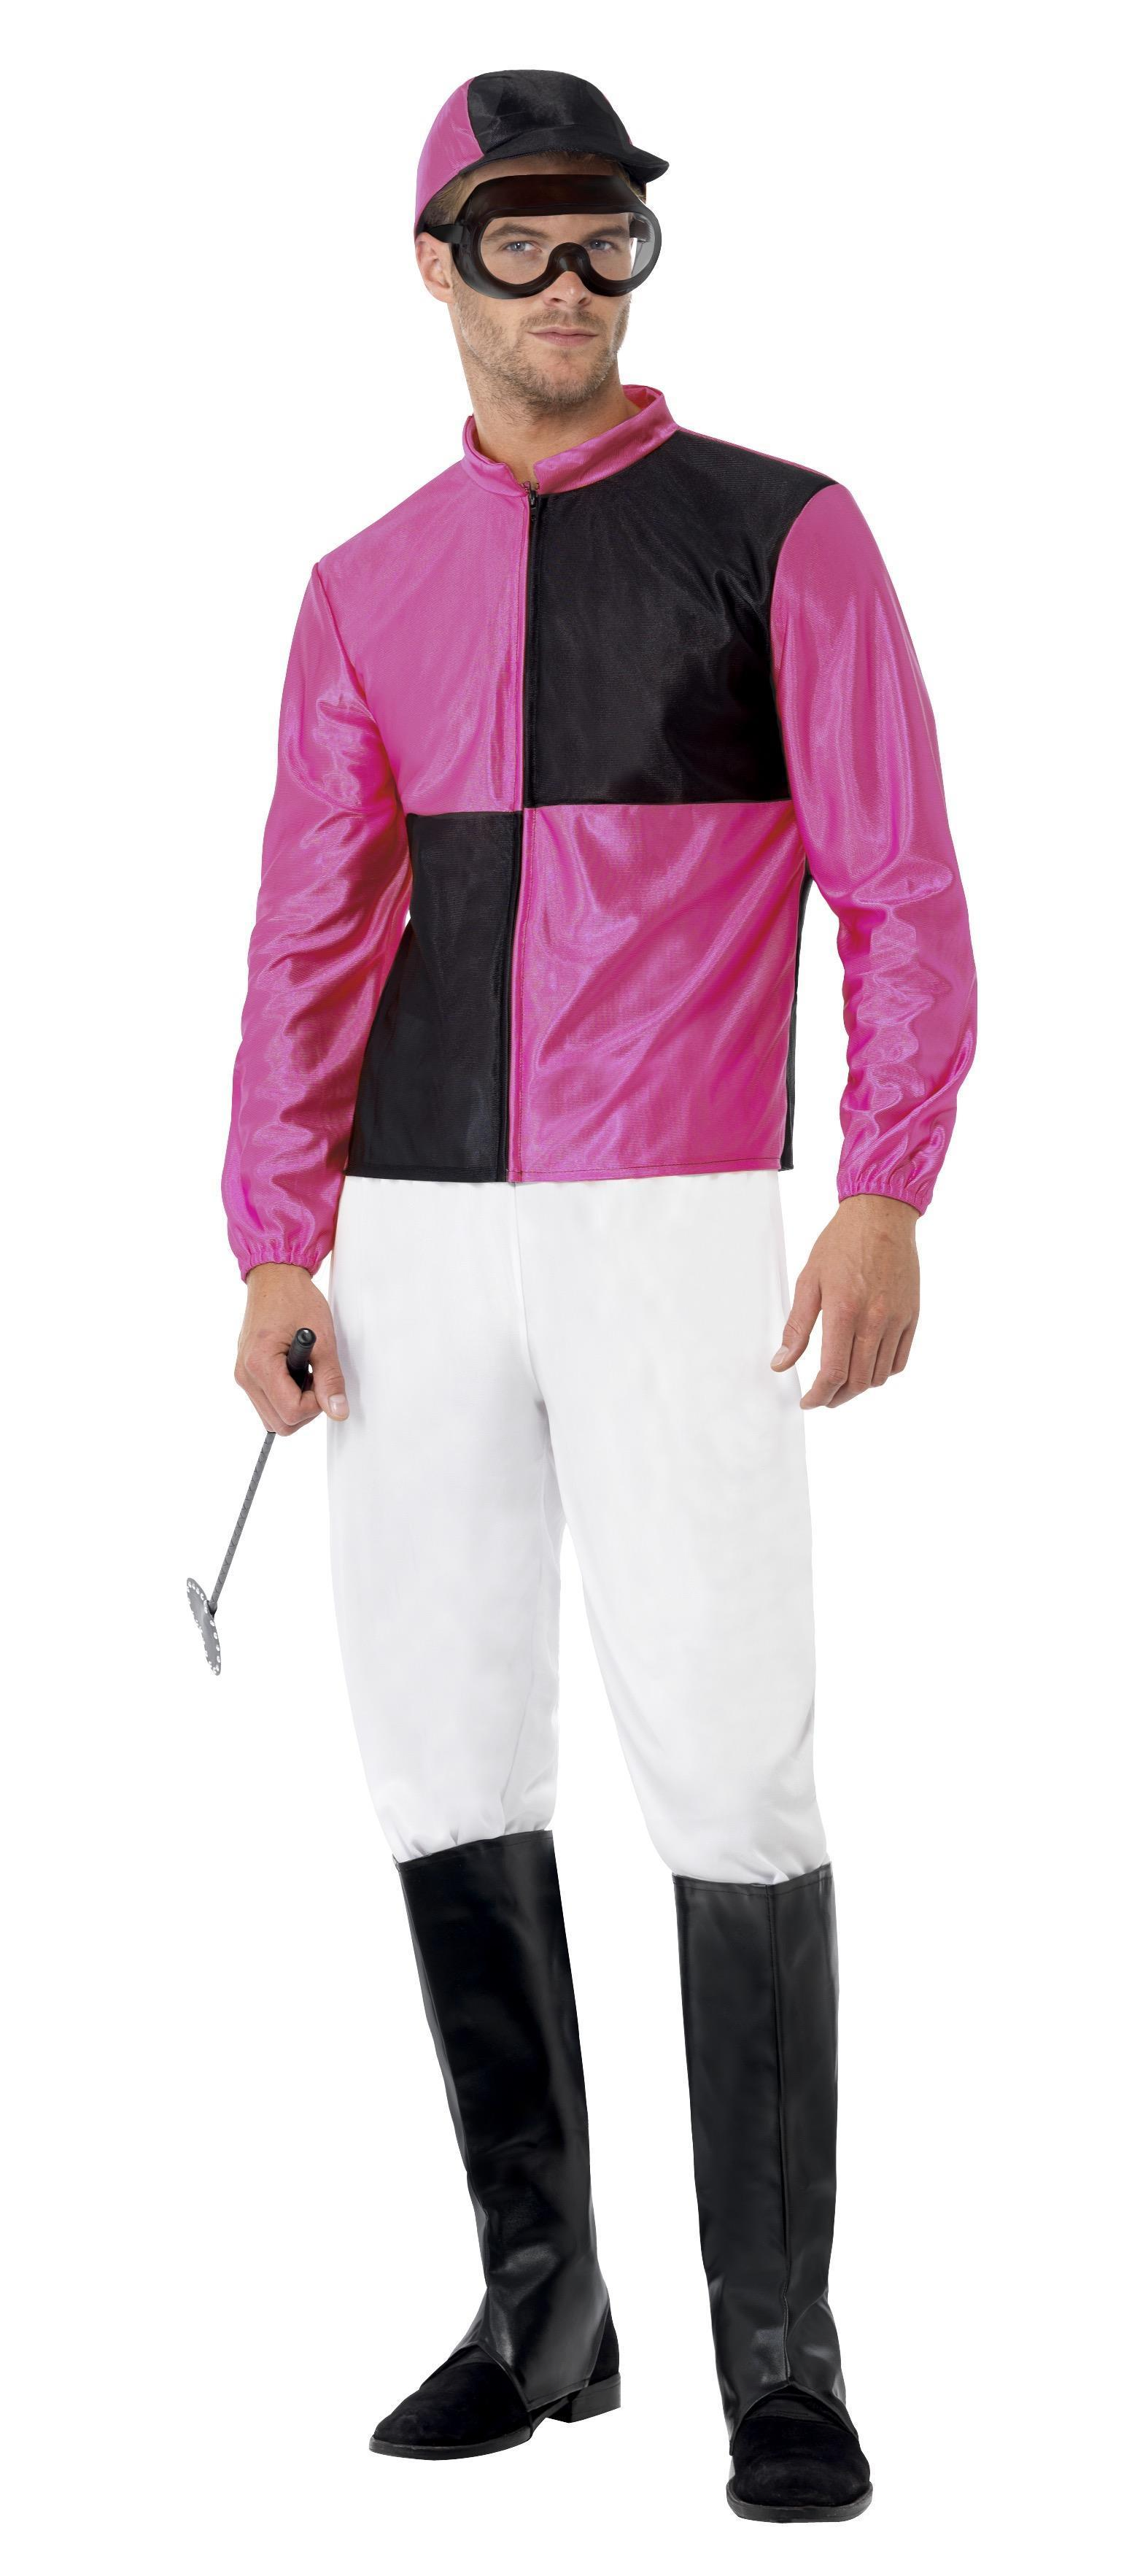 Jockey Costume Black & Pink